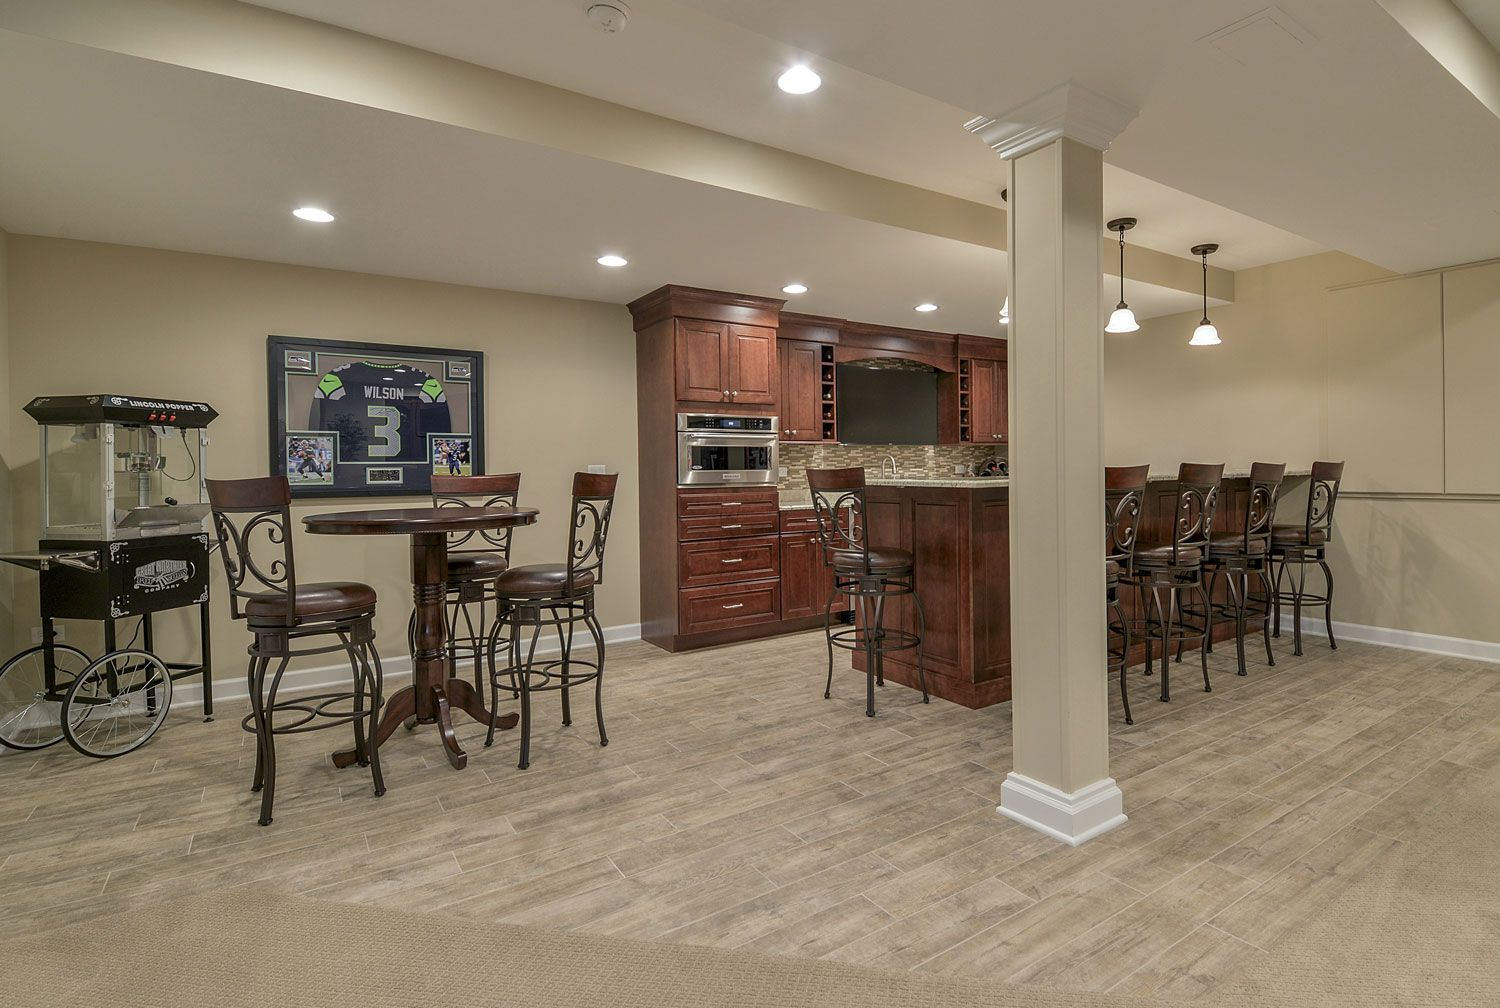 Full Bar Kitchenette Bathroom Finished Basement Remodeling Geneva - Bathroom remodeling geneva il